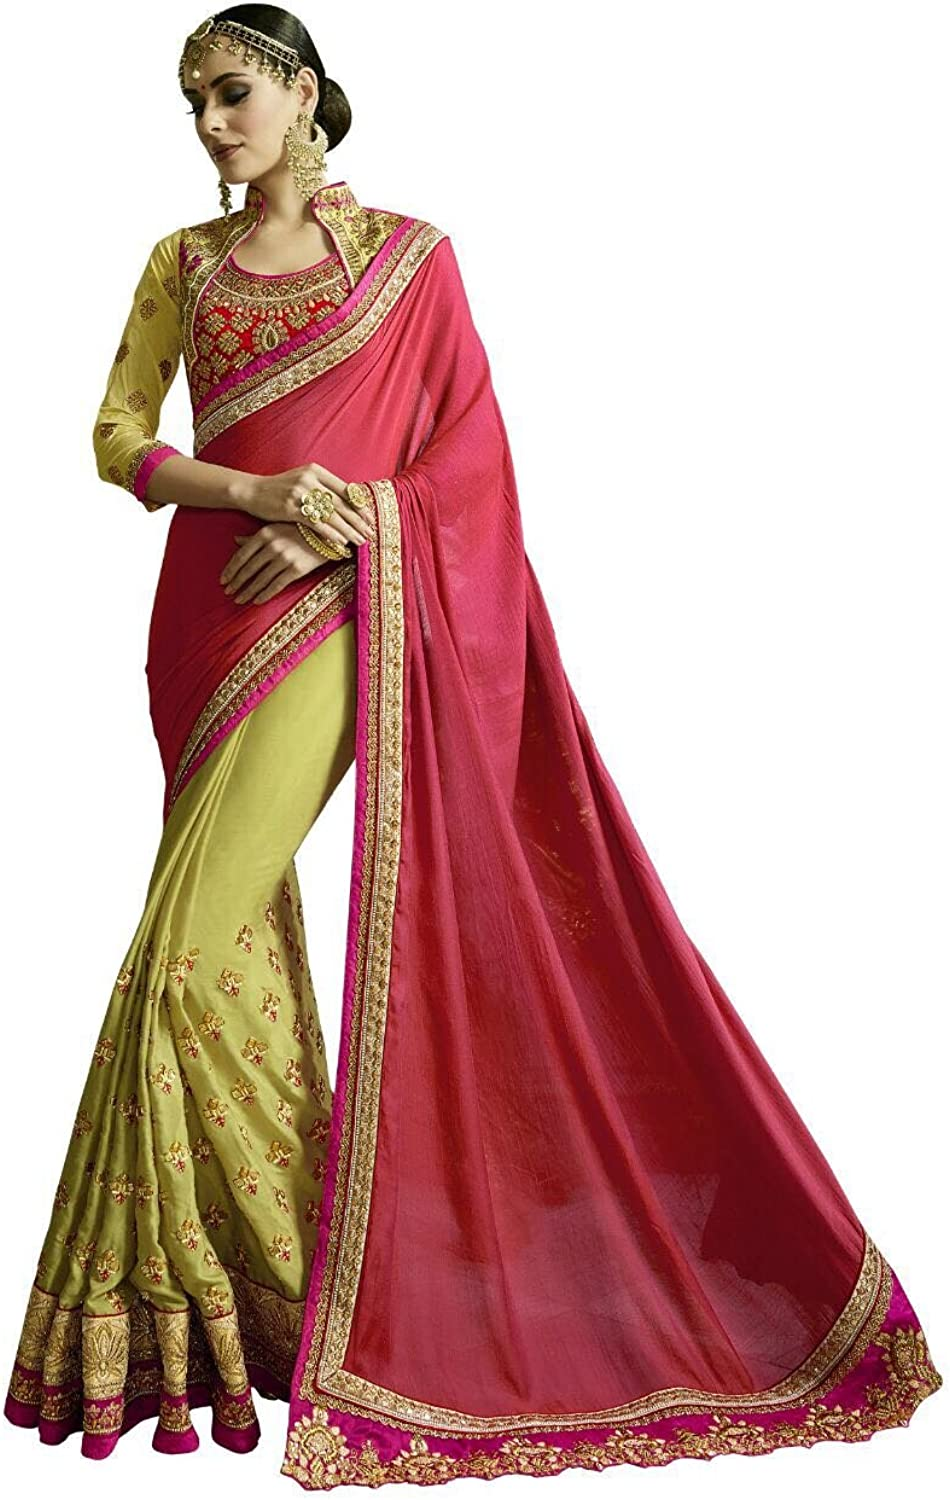 BOLLYWOOD DESIGNER NEW FASHION STYLISH SAREE SARI WITH EMBROIDERY BLOUSE WEDDING CEREMONY PARTY WEAR INDIAN MUSLIM WOMEN BY BALAJI EMPORIUM 365